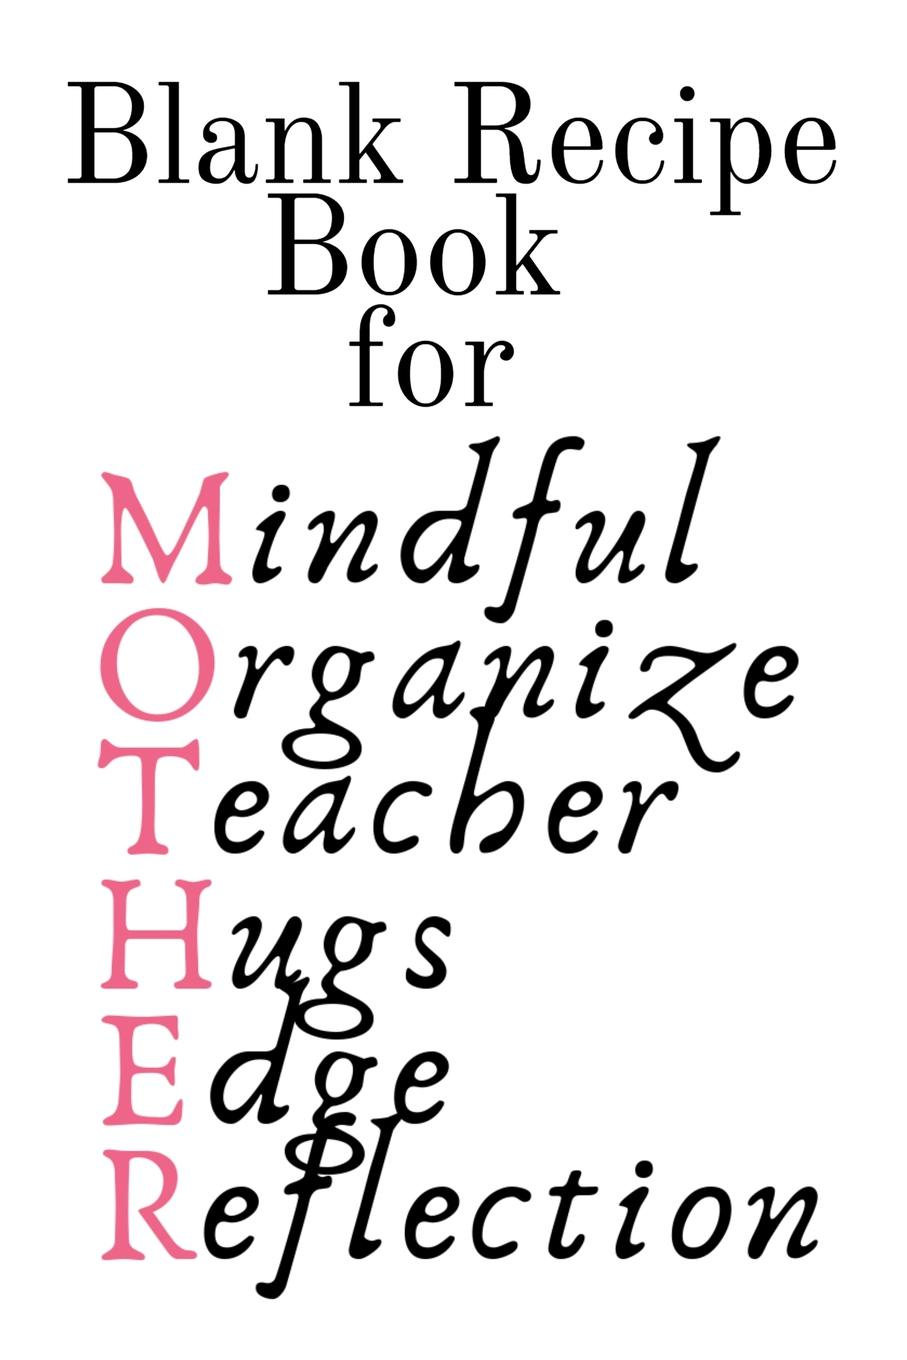 Jennifer Wellington Blank Recipe Book For Mother. Mindful, Organize, Teacher, Hugs, Edge, Reflection . Mother Journal To Write In Favorite Recipes - Cute Cookbook Gift For Mom From Daughter, Son, Child, Husband, Boyfriend - Notepad, 6x9 Lined Paper, 120 Pages Ruled C... journal jungle publishing my recipe book 100 recipe pages conversion tables quotes and more make your own cookbook using this blank recipe book 8 x 10 inches pink purple and orange